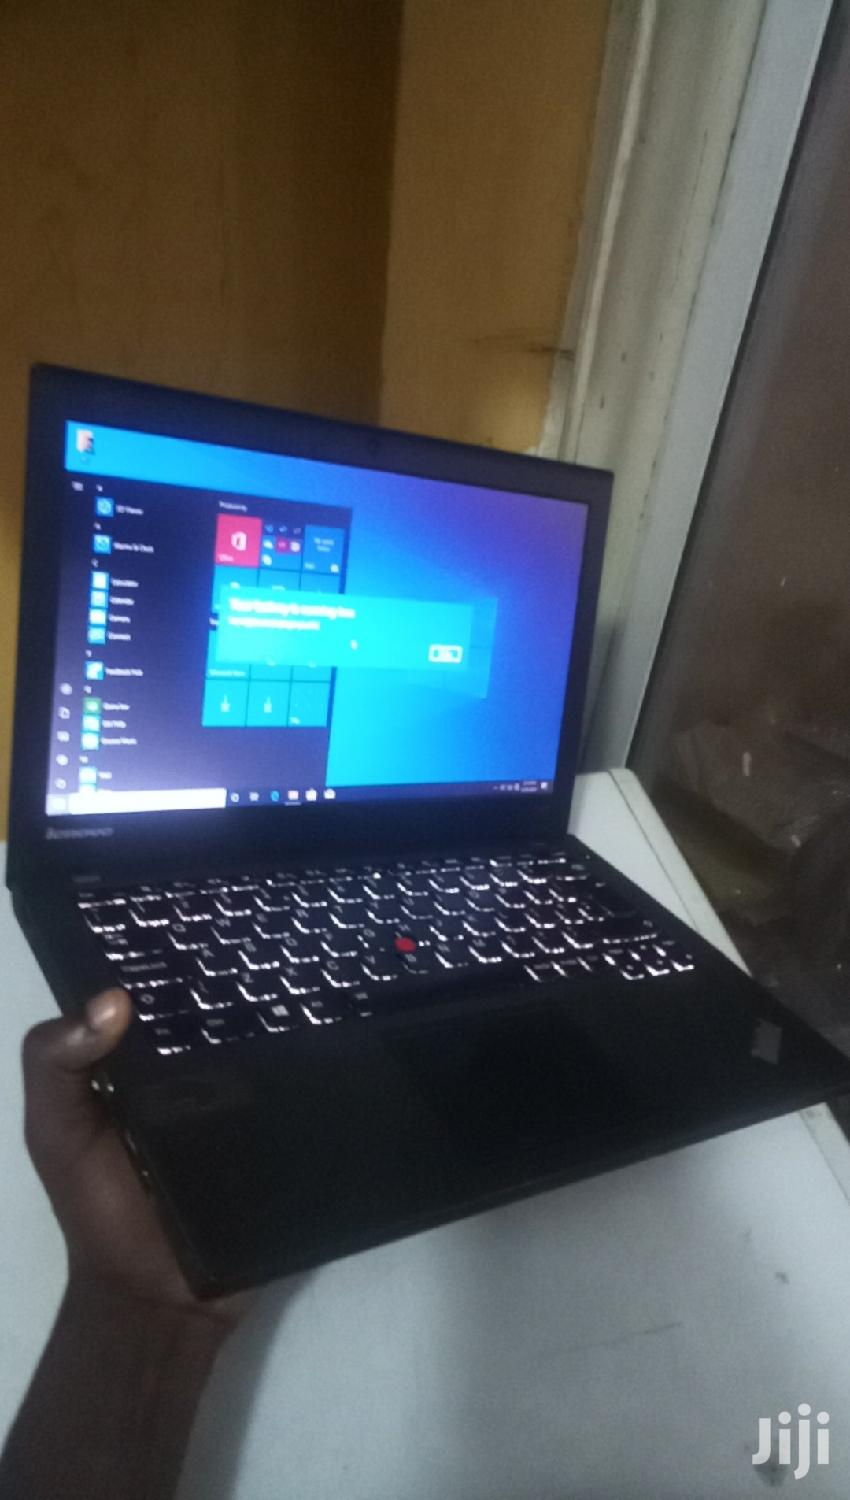 Archive: Laptop Lenovo ThinkPad X240 4GB Intel Core i5 HDD 500GB